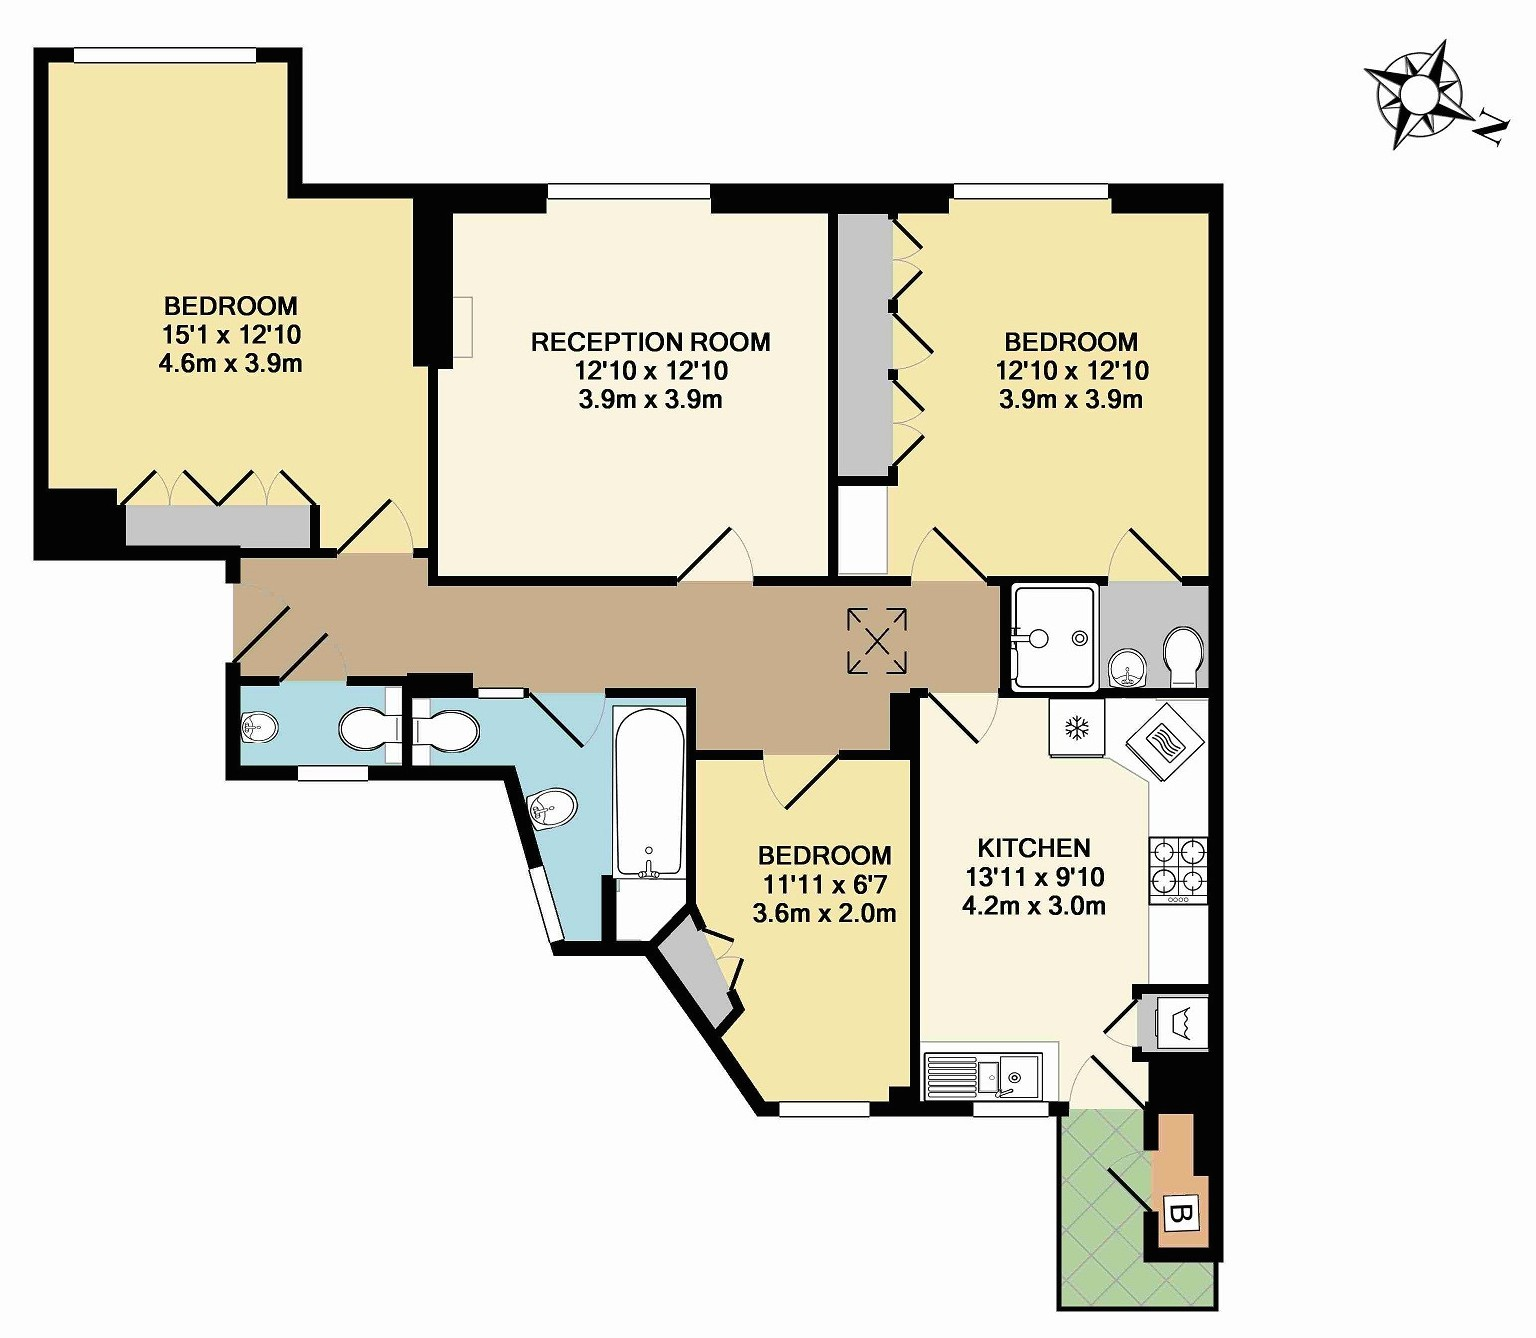 Marylebone - Floorplan